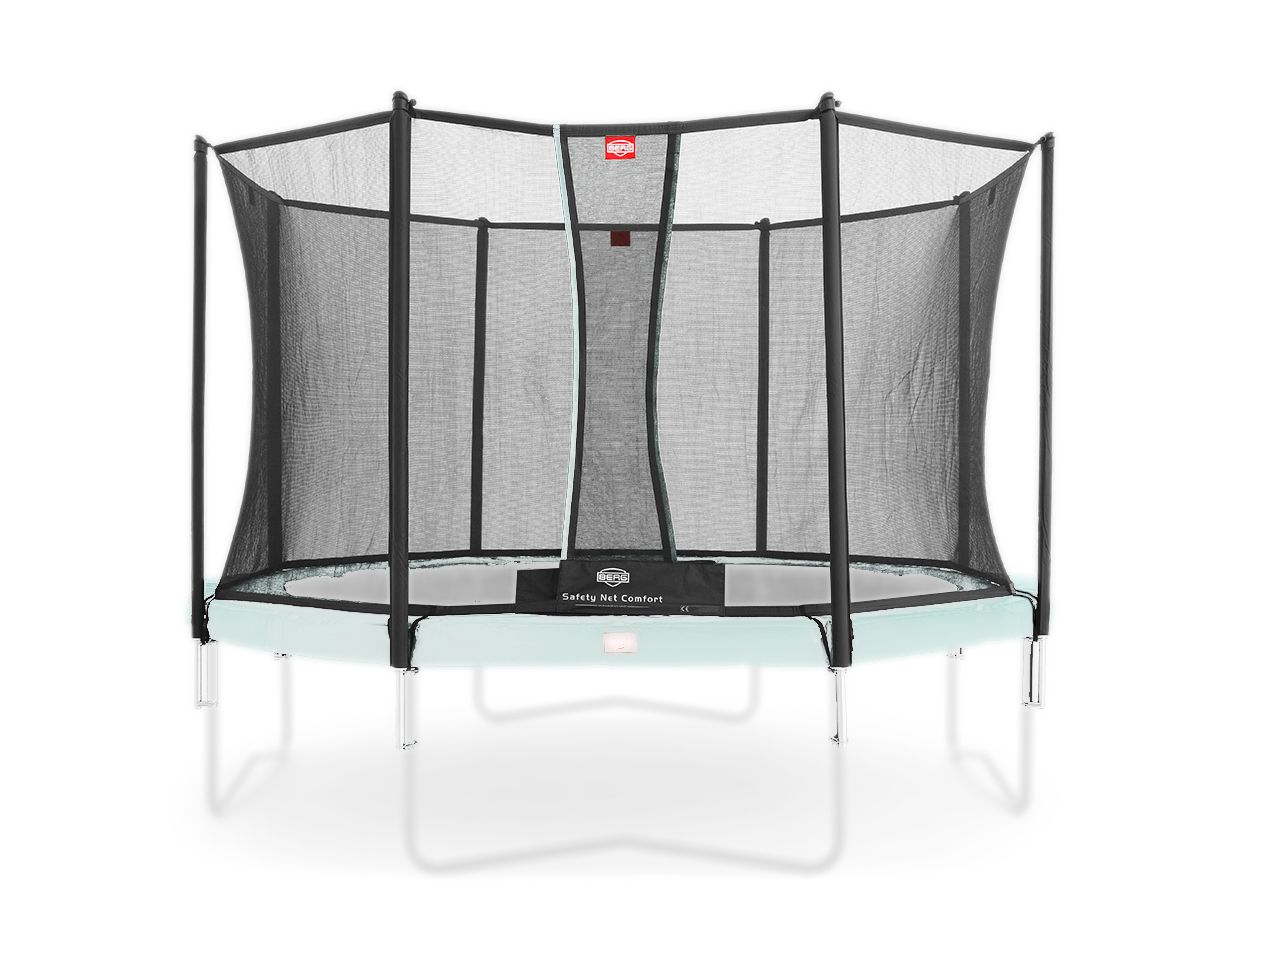 BERG Safety Net Comfort 270 (9 ft)